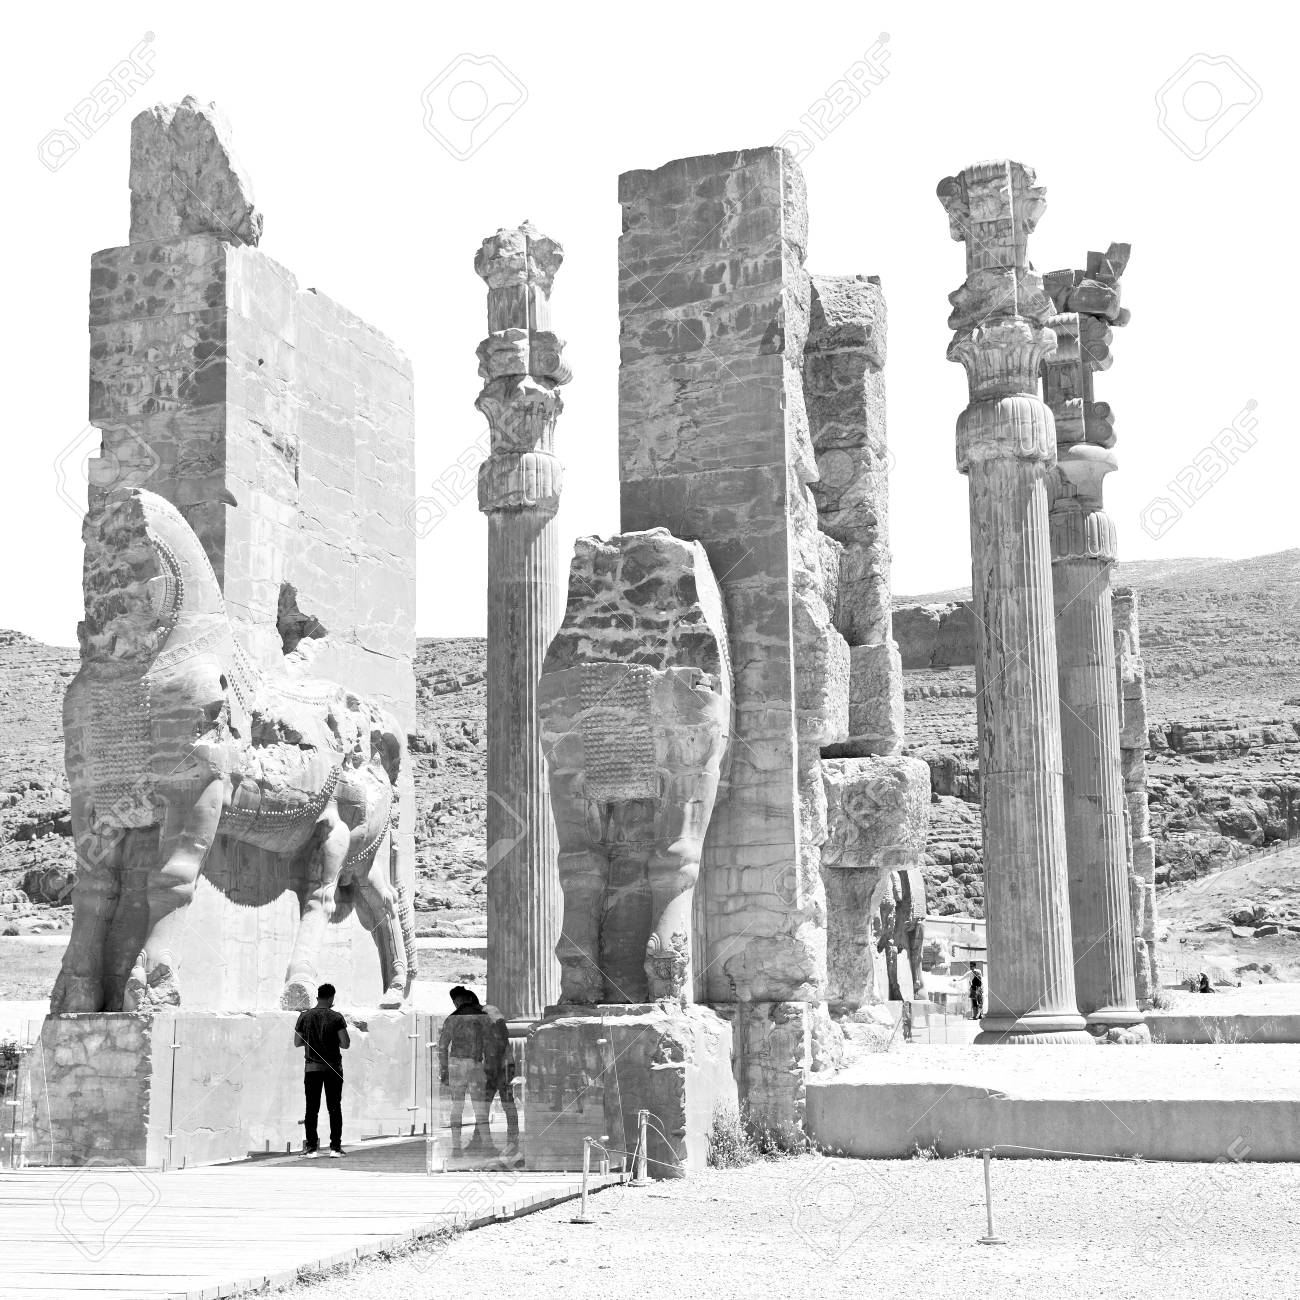 Blur In Iran Persepolis The Old Ruins Historical Destination Stock Photo Picture And Royalty Free Image Image 79698875